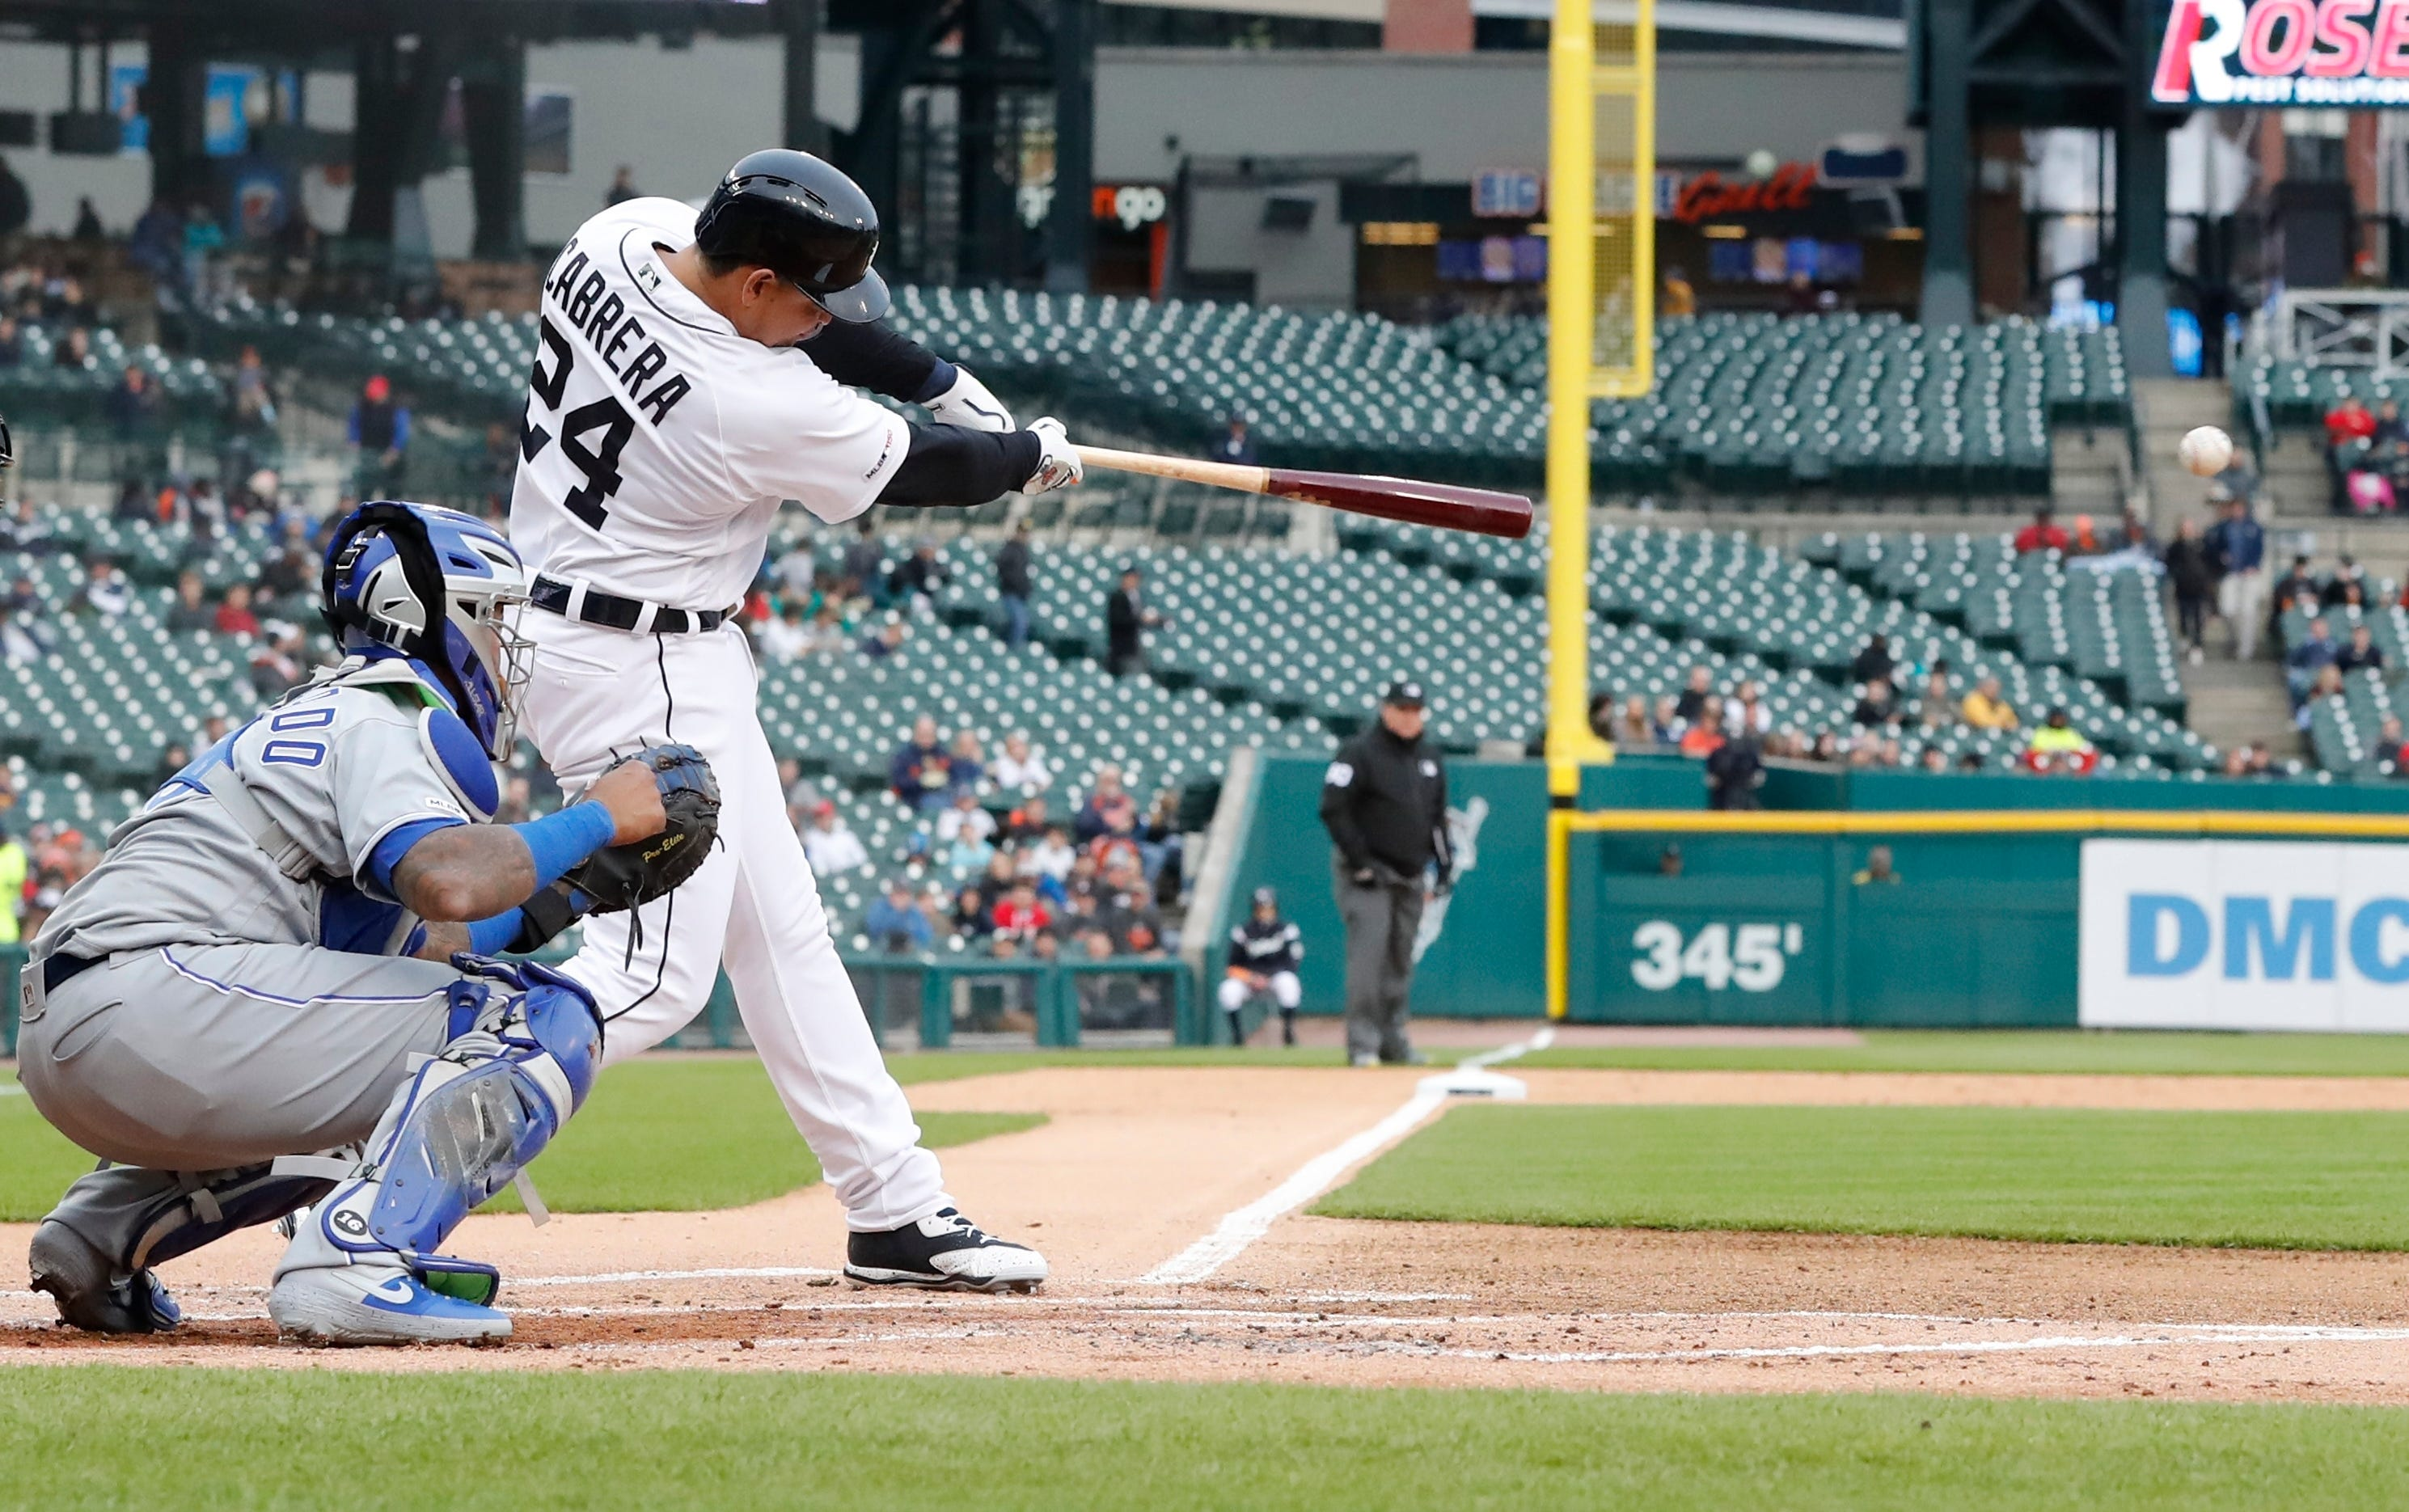 57edbba5f Detroit Tigers star Miguel Cabrera brushed off worries about his lack of  early power, blaming the cold and lack of lineup protection.